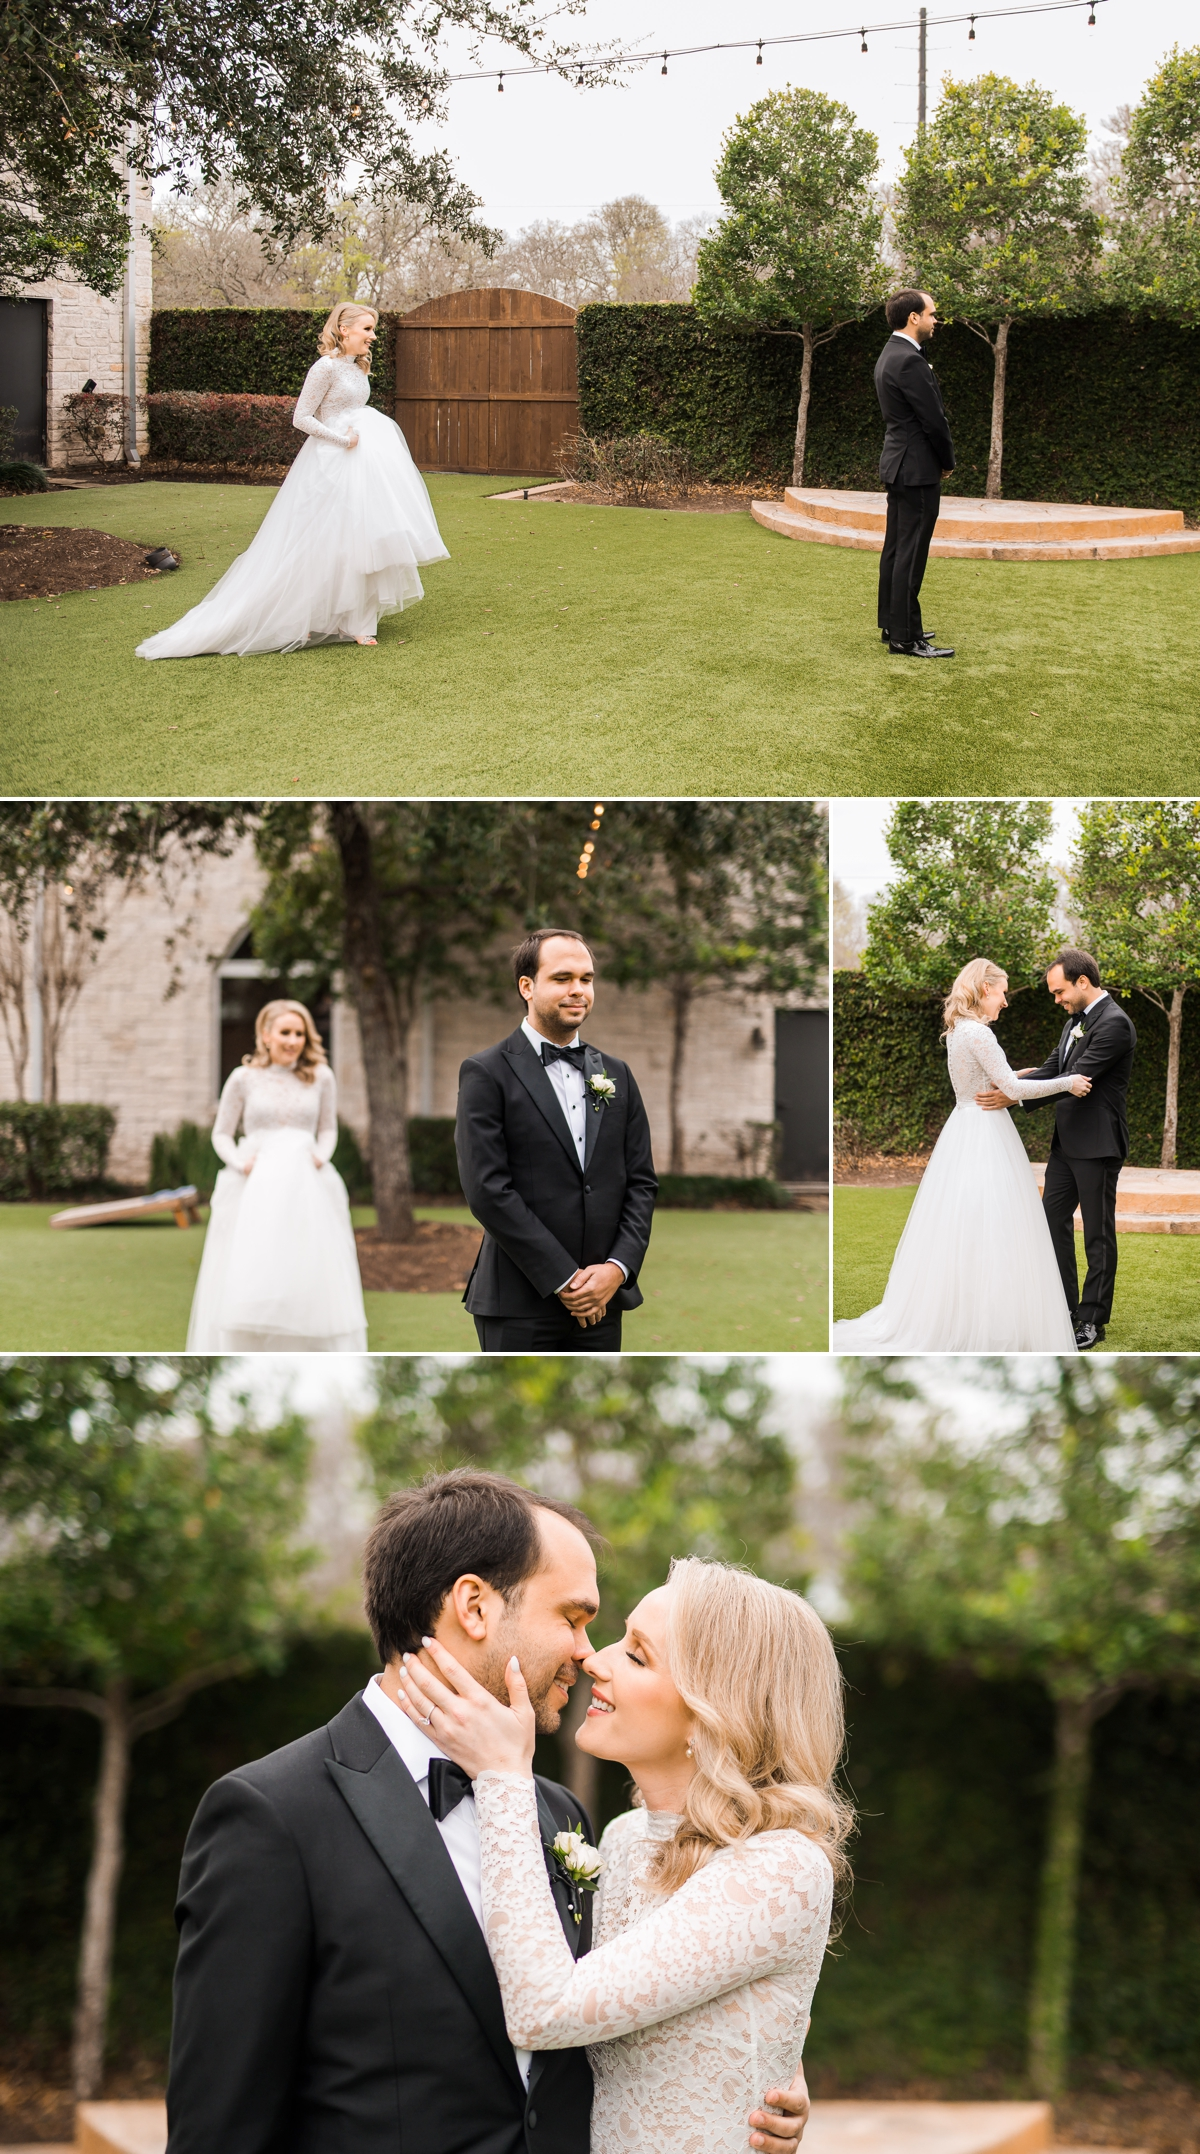 First look between bride and groom at Briscoe Manor